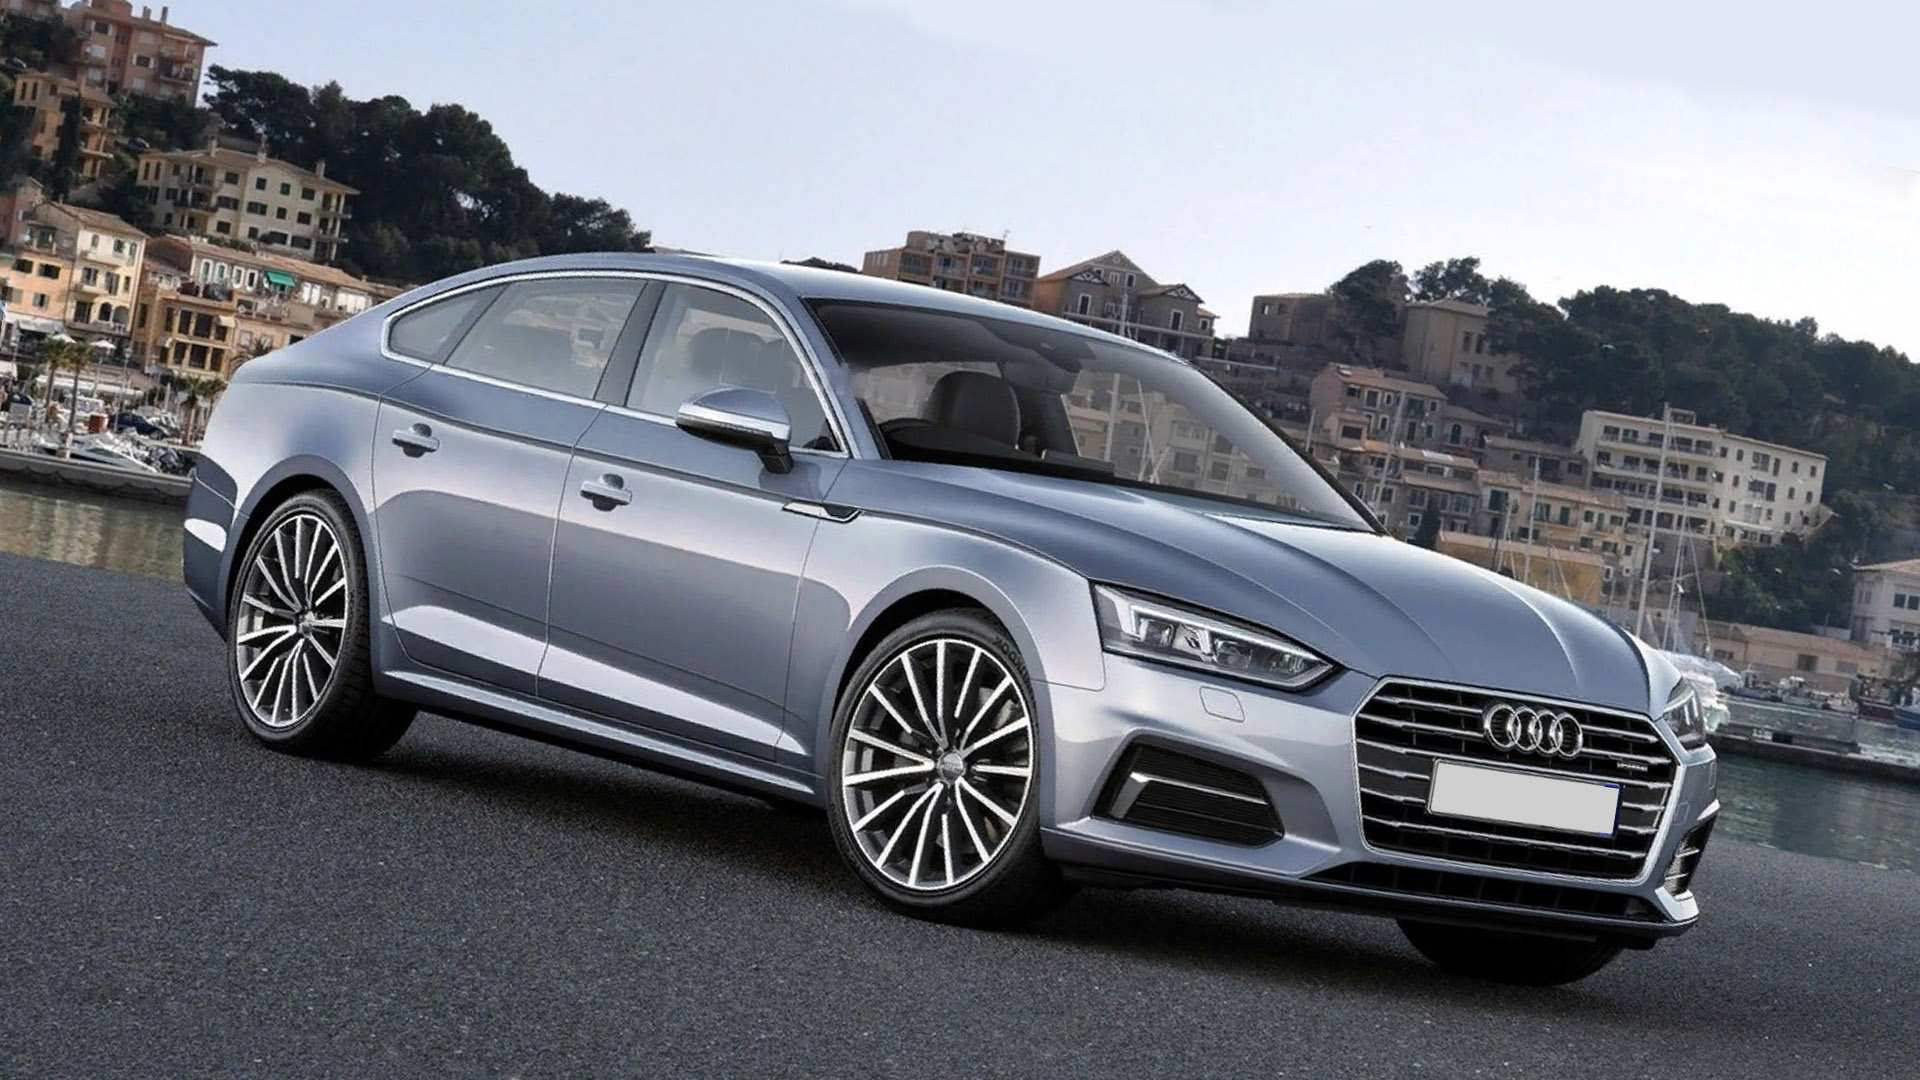 65 Concept of 2020 Audi A5 First Drive with 2020 Audi A5